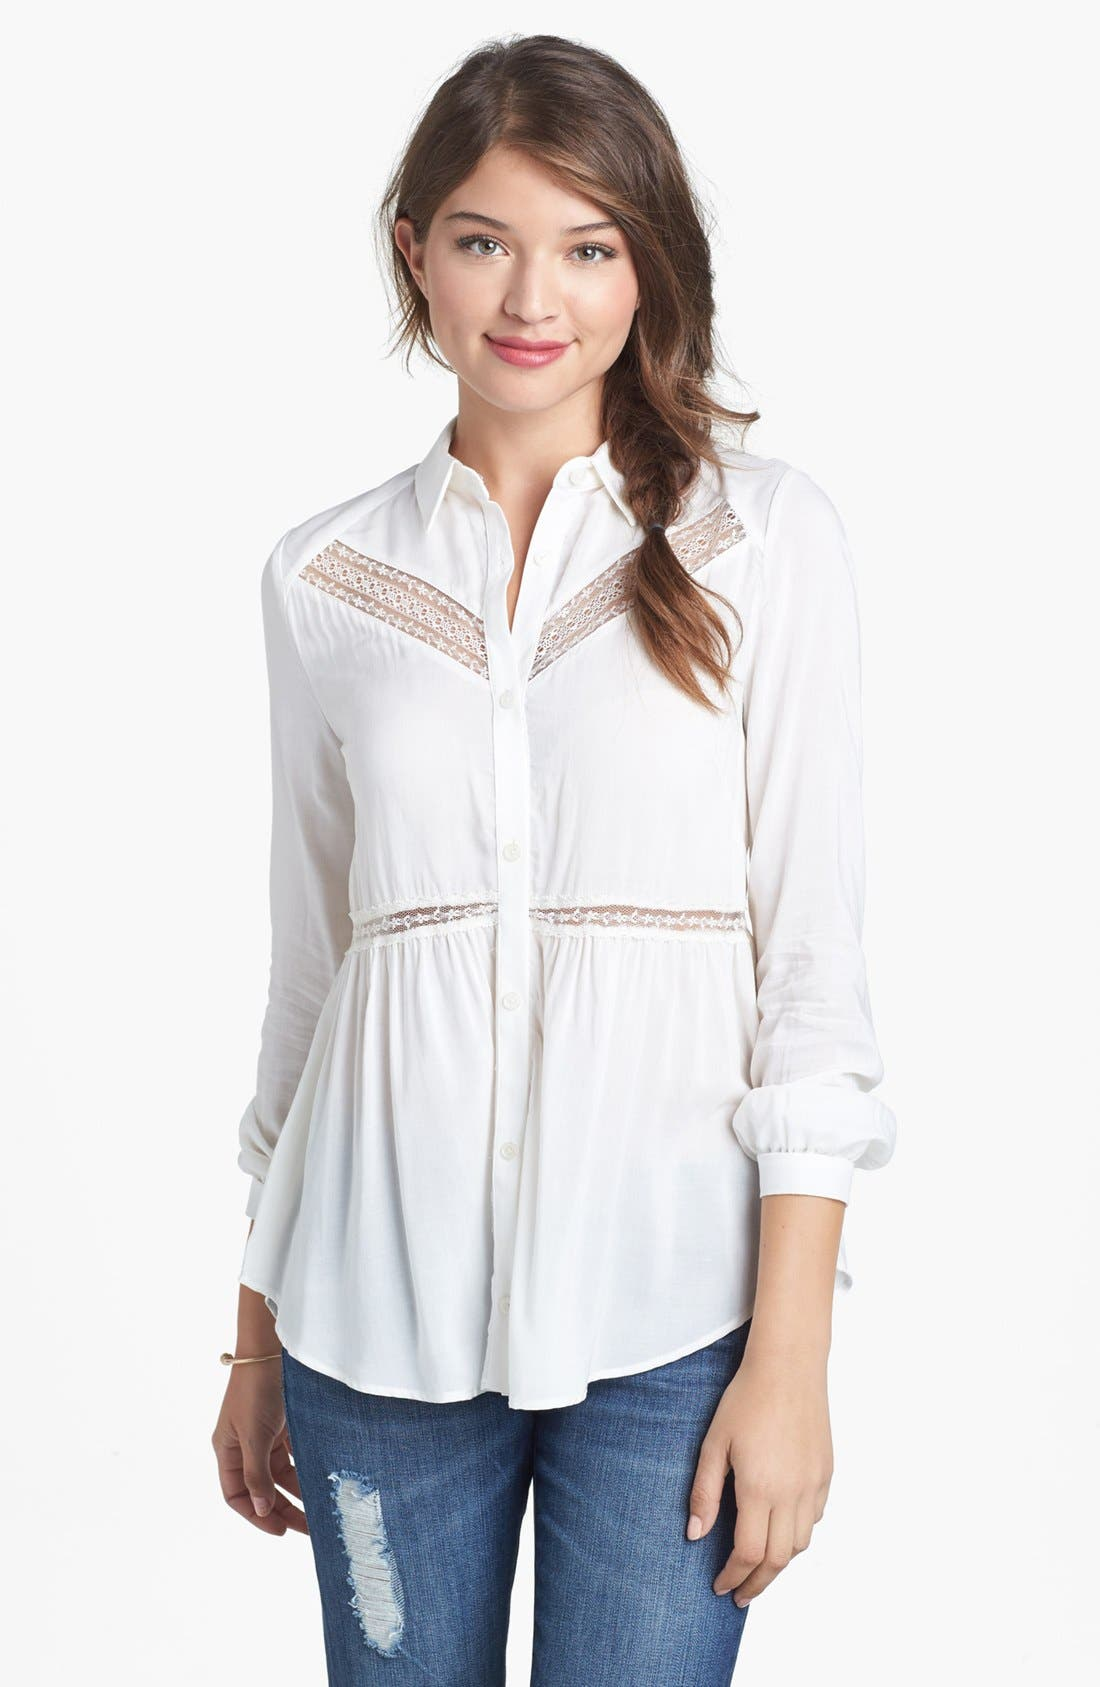 Alternate Image 1 Selected - Lush Lace Trim Shirt (Juniors)